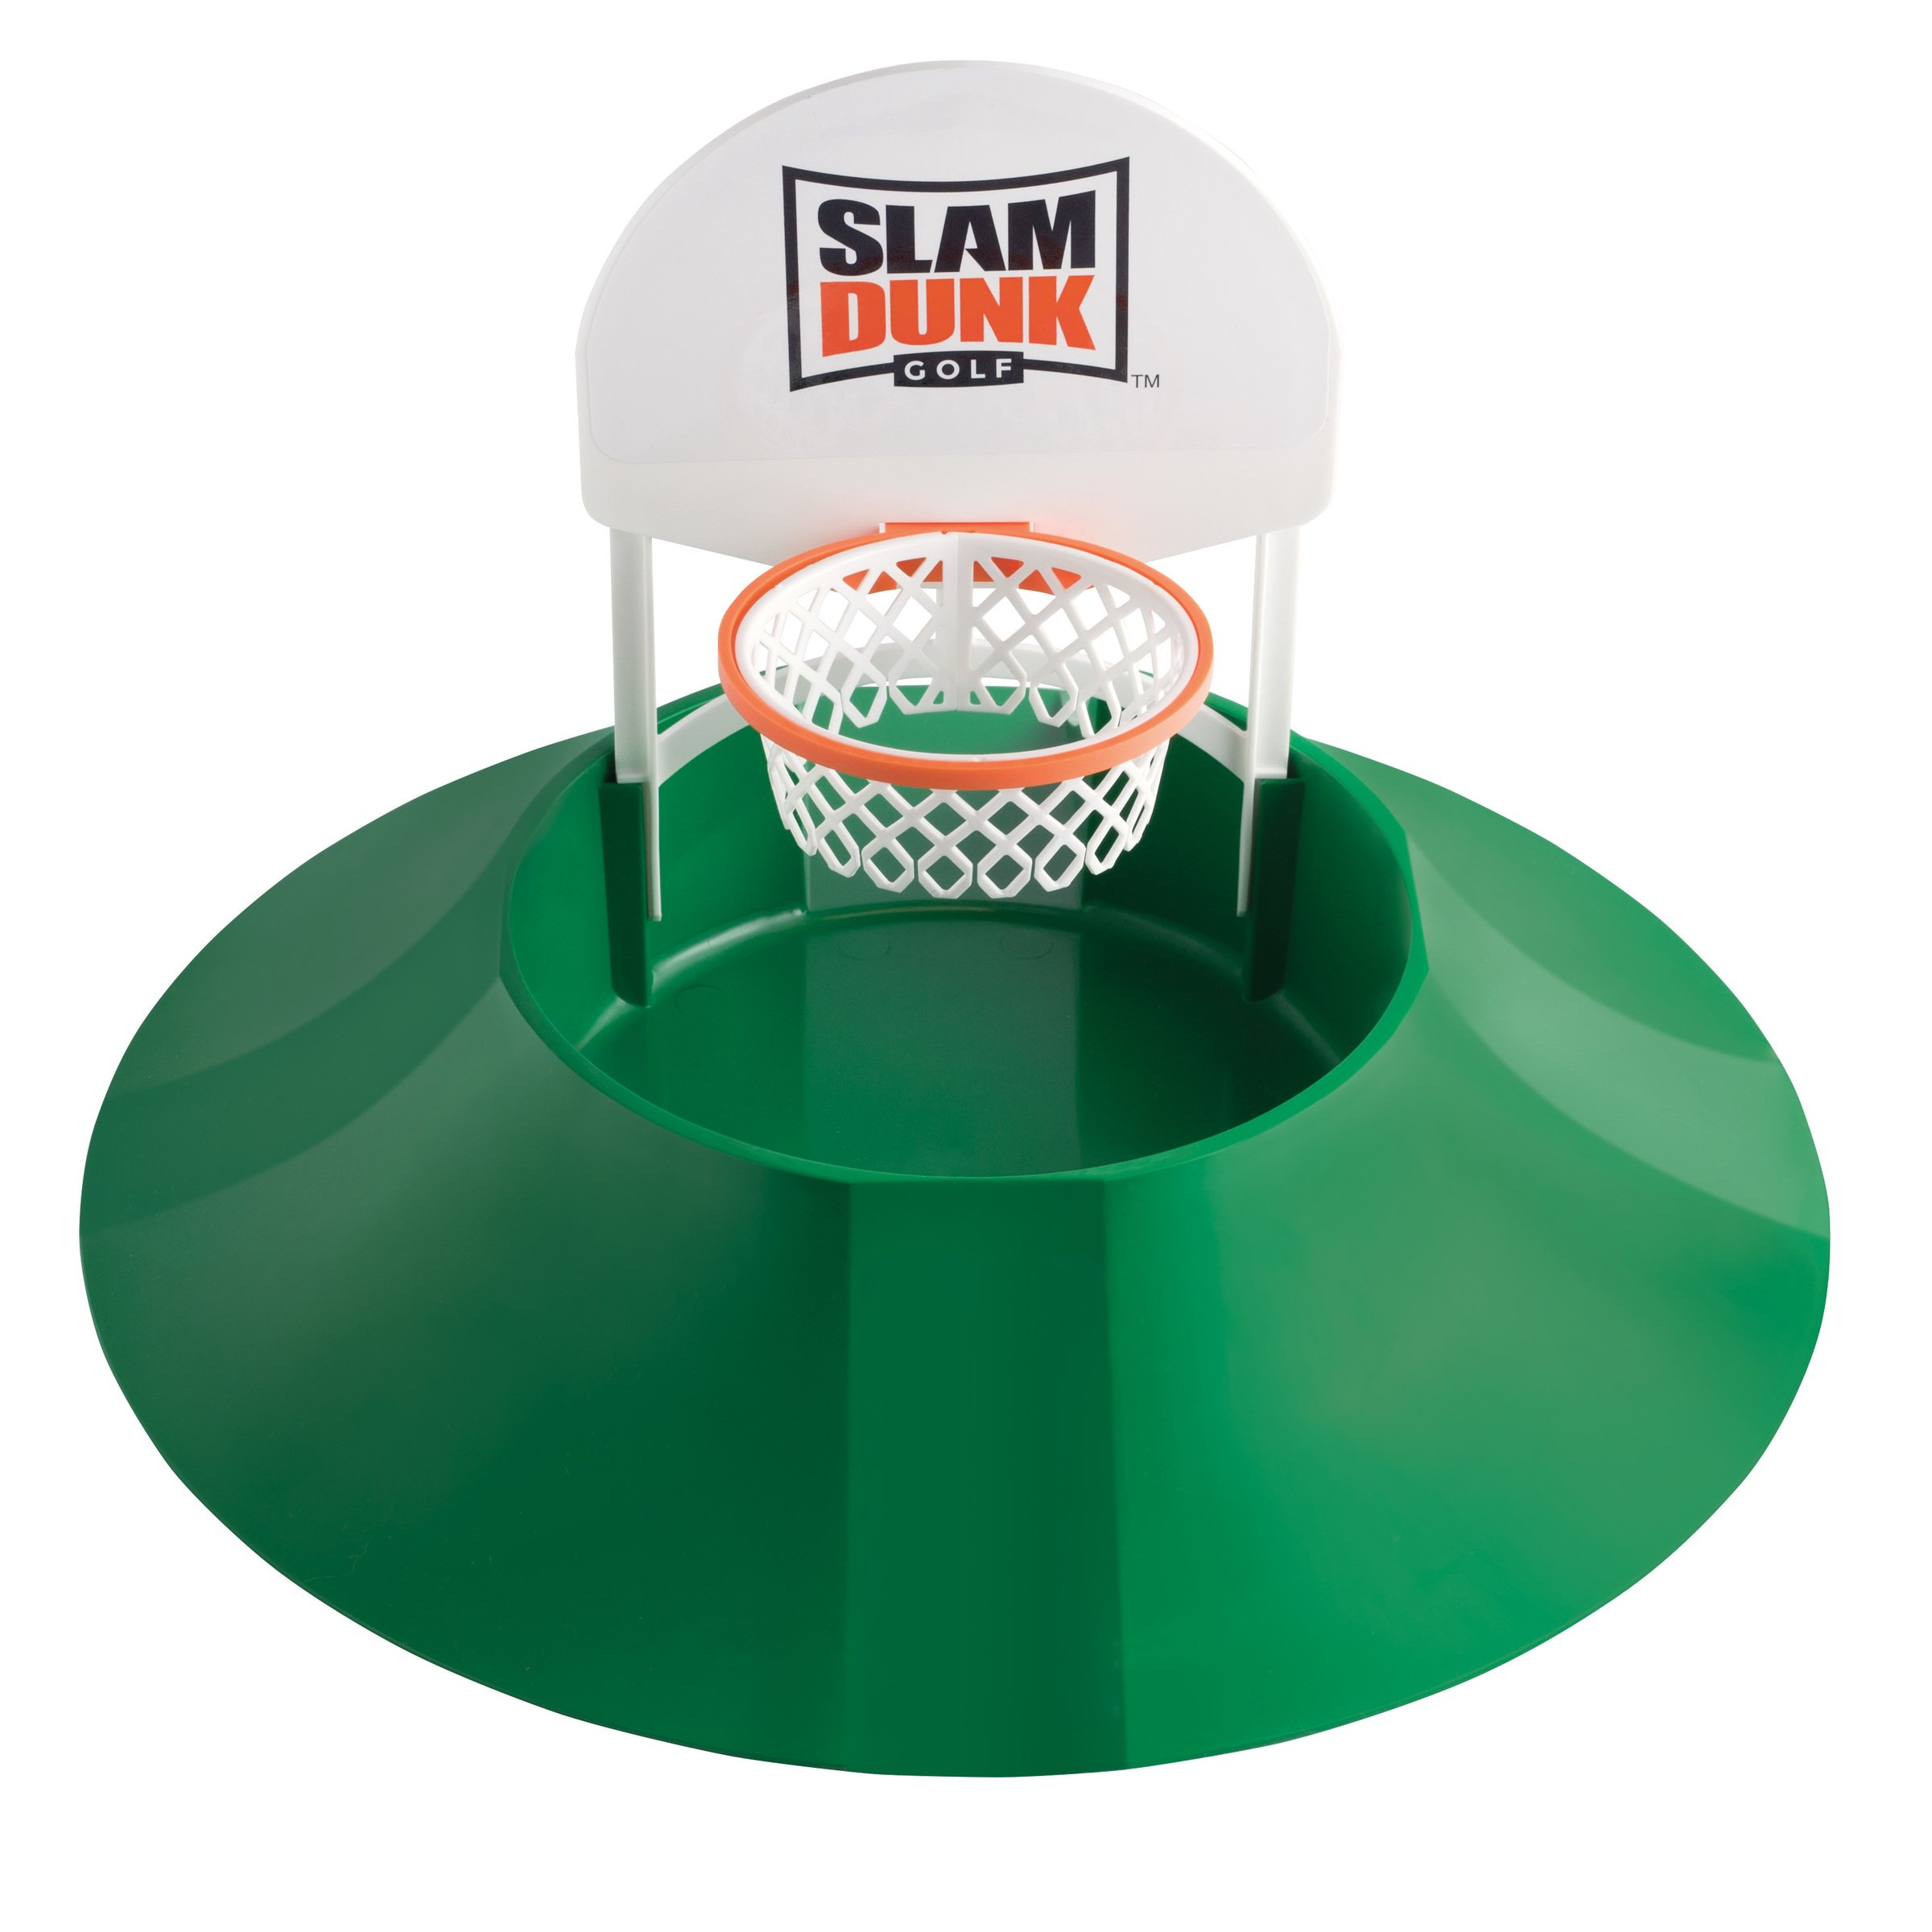 Slam Dunk Golf Hot Shot Putting Cup Game by Slam Dunk Golf (Image #1)